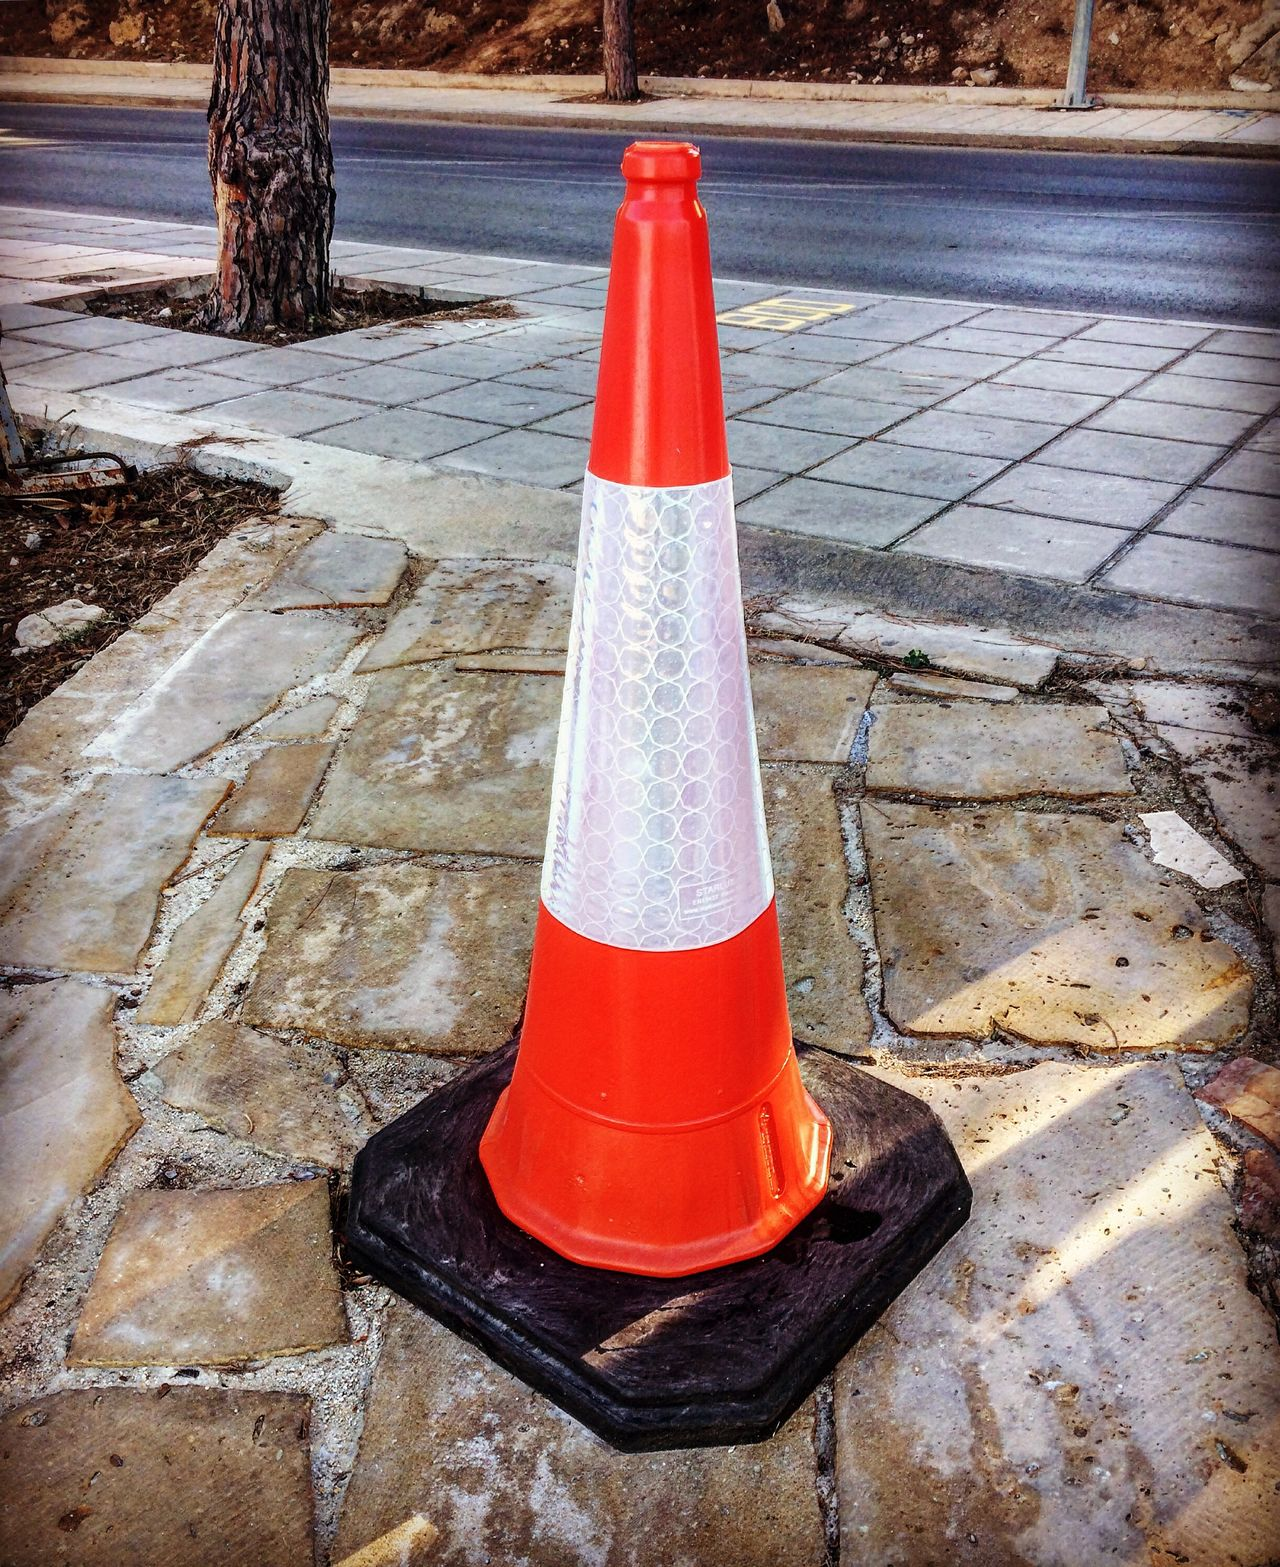 Traffic Cone Road Warning Boundary Cone Outdoors Red Safety Sign Street Traffic Urban White Danger No People Day Road Sign